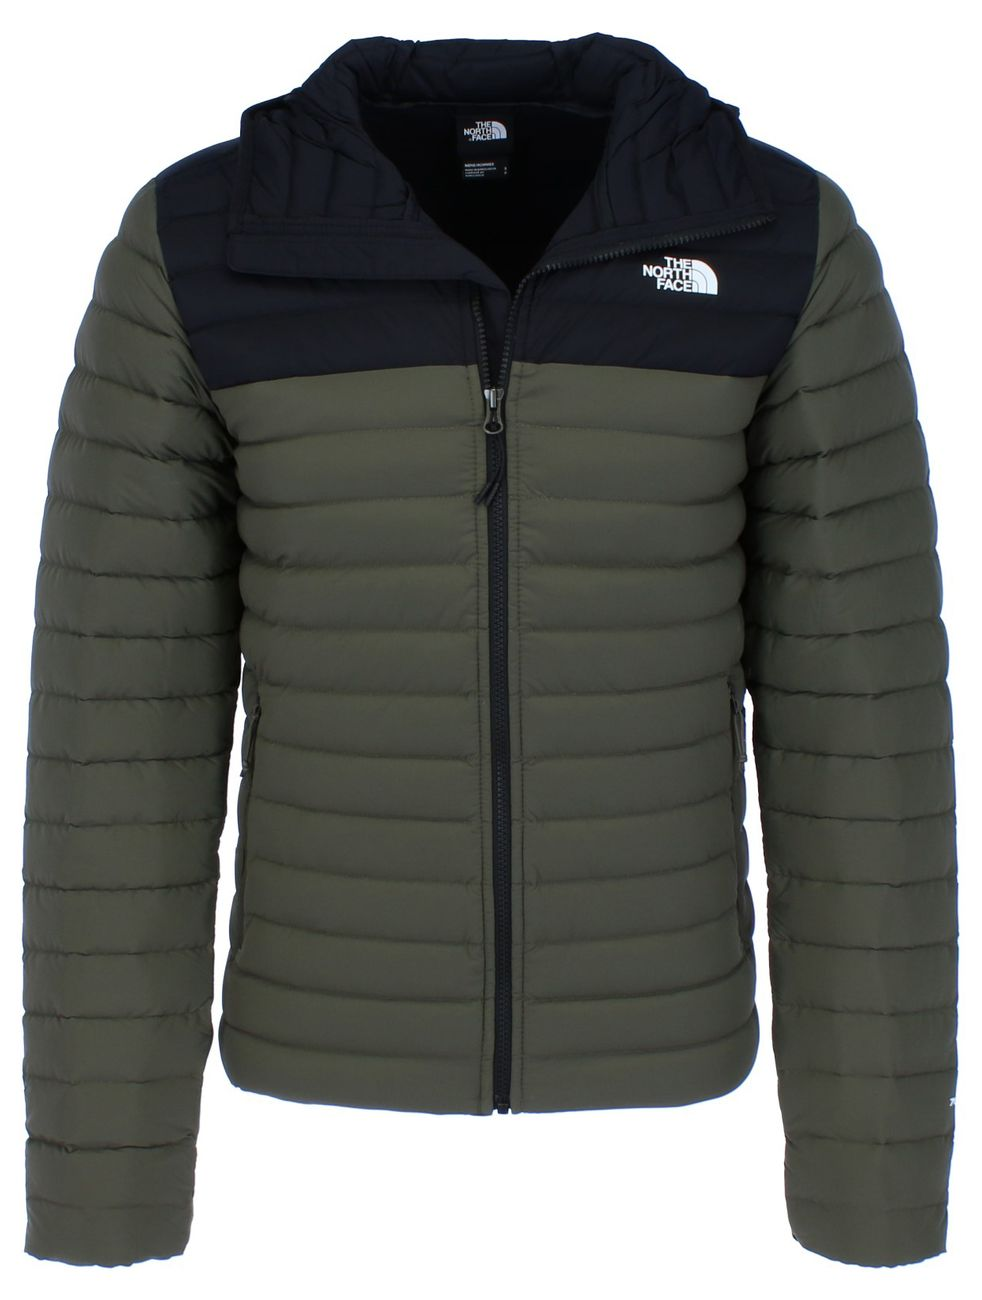 Details about The north face Stretch down Hoodie Mens down Winter Jacket with Hood